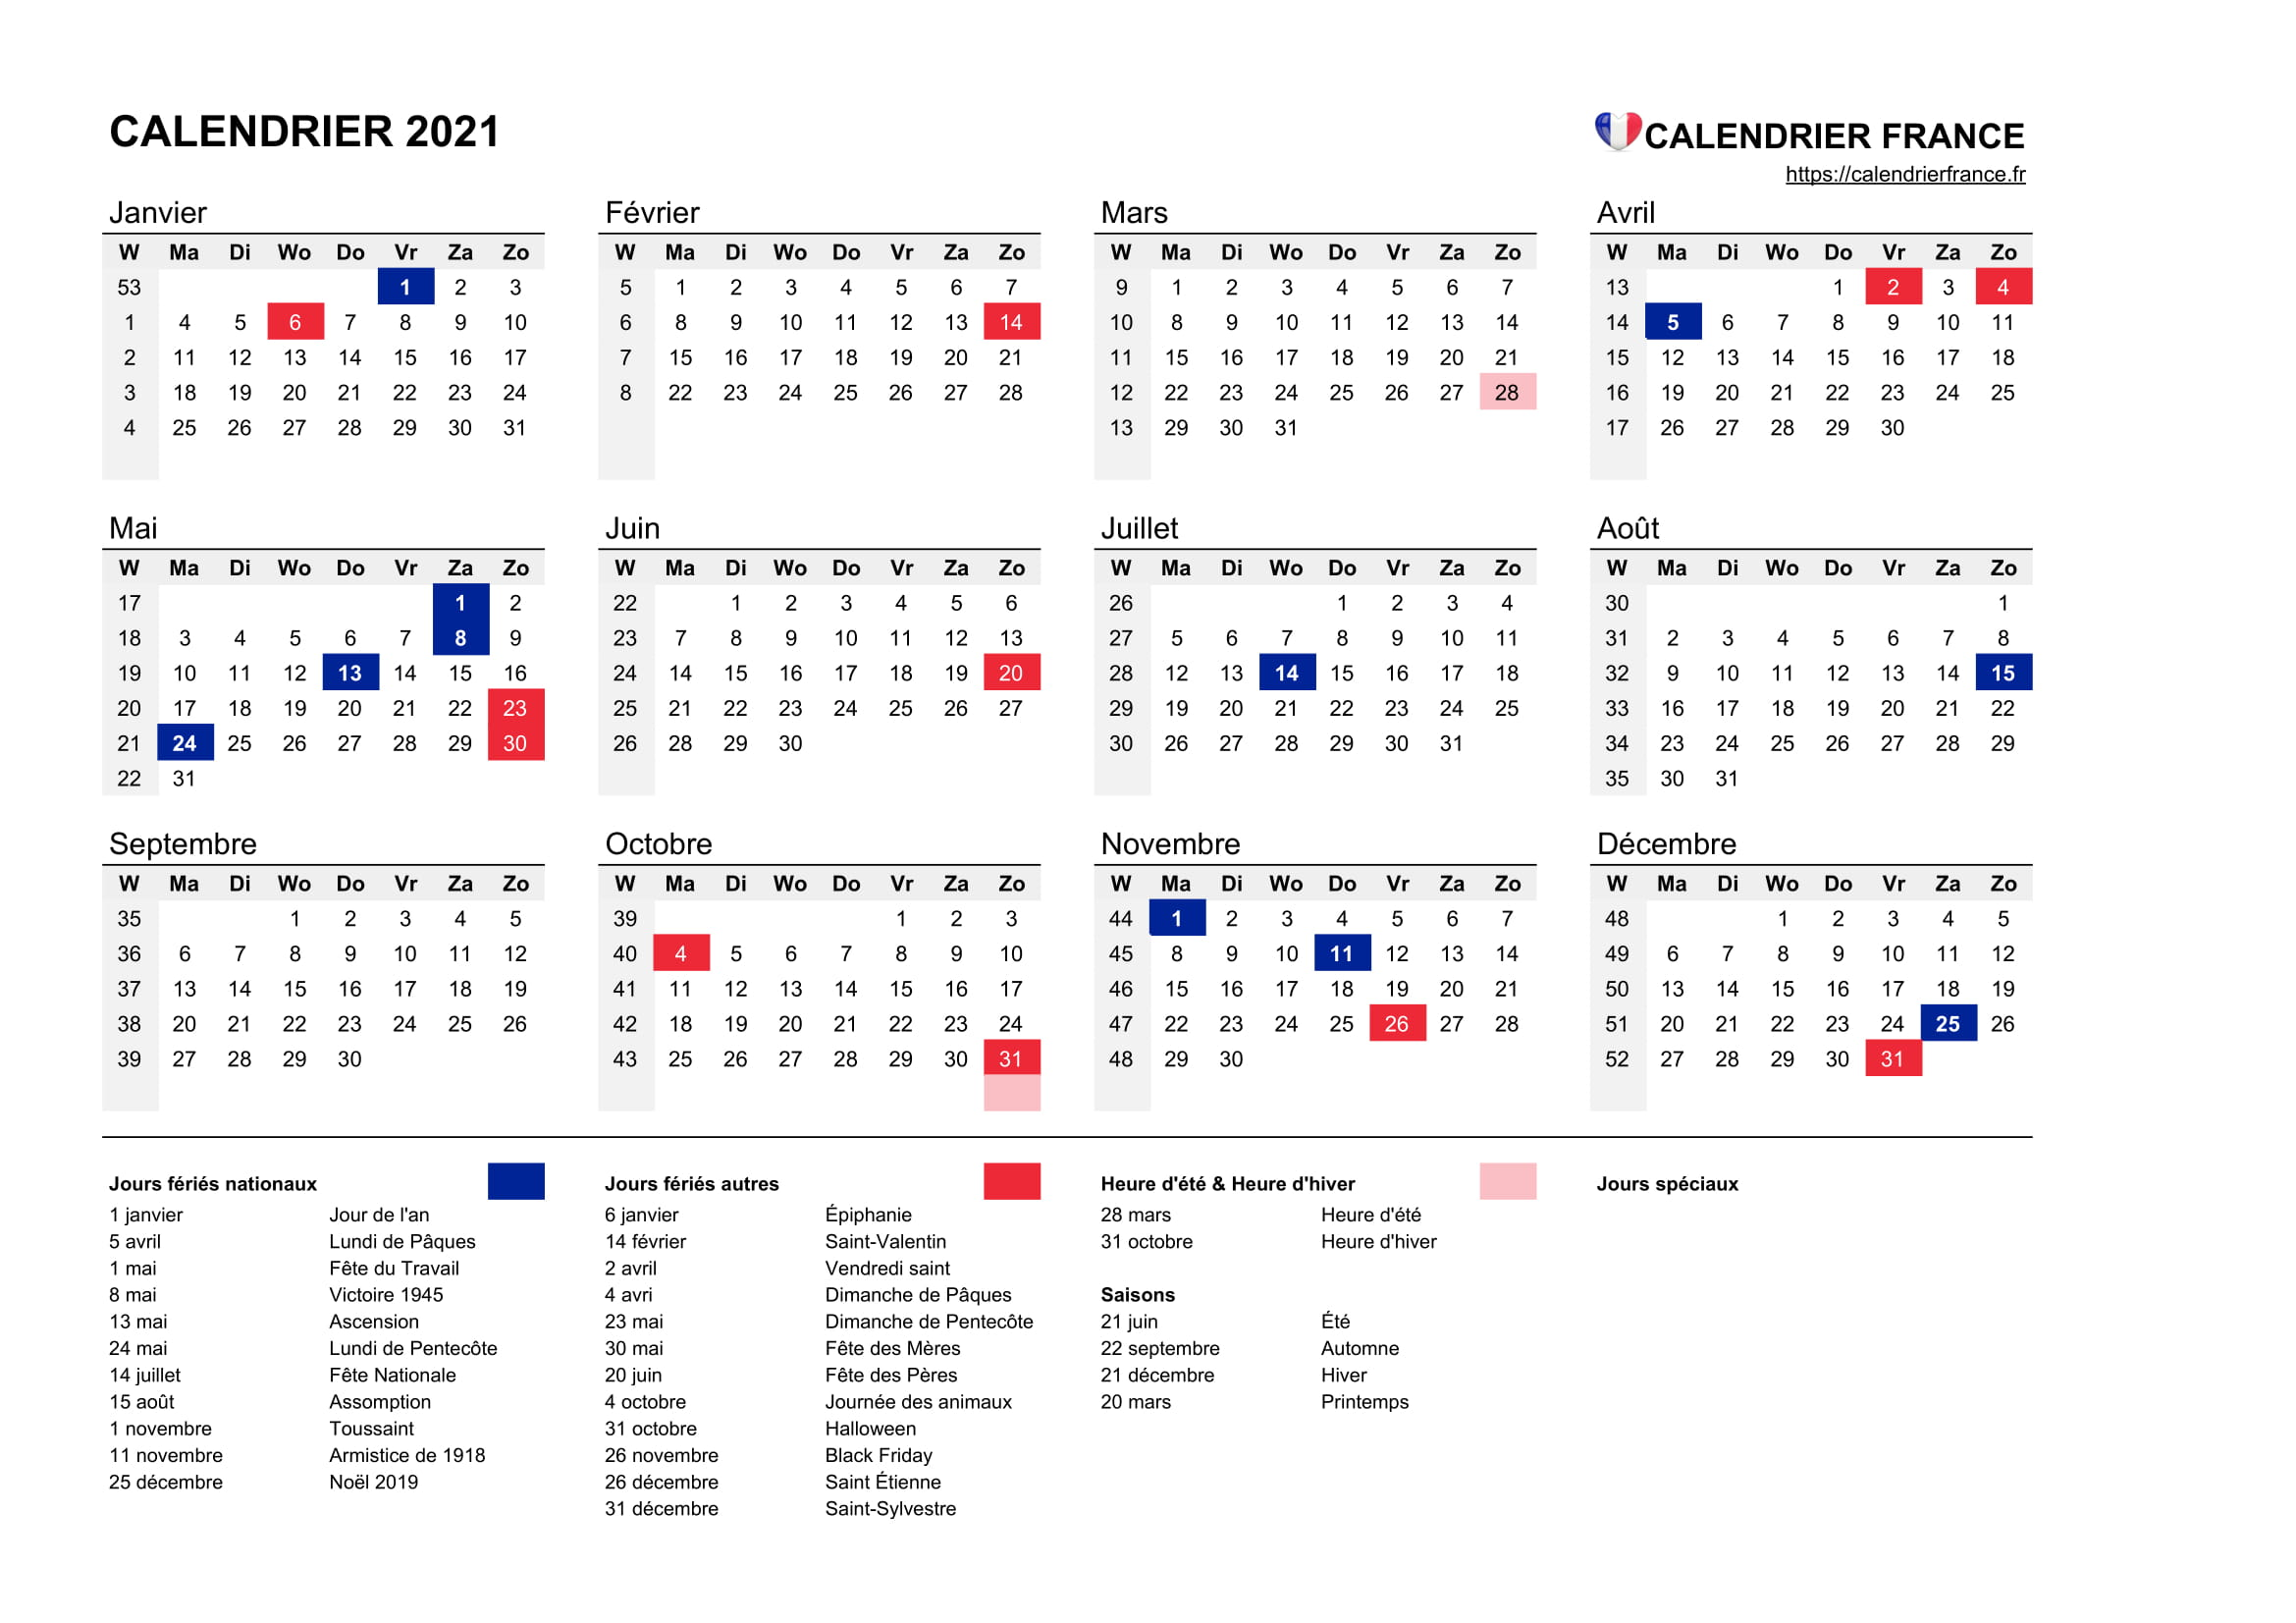 Calendrier 2021 France